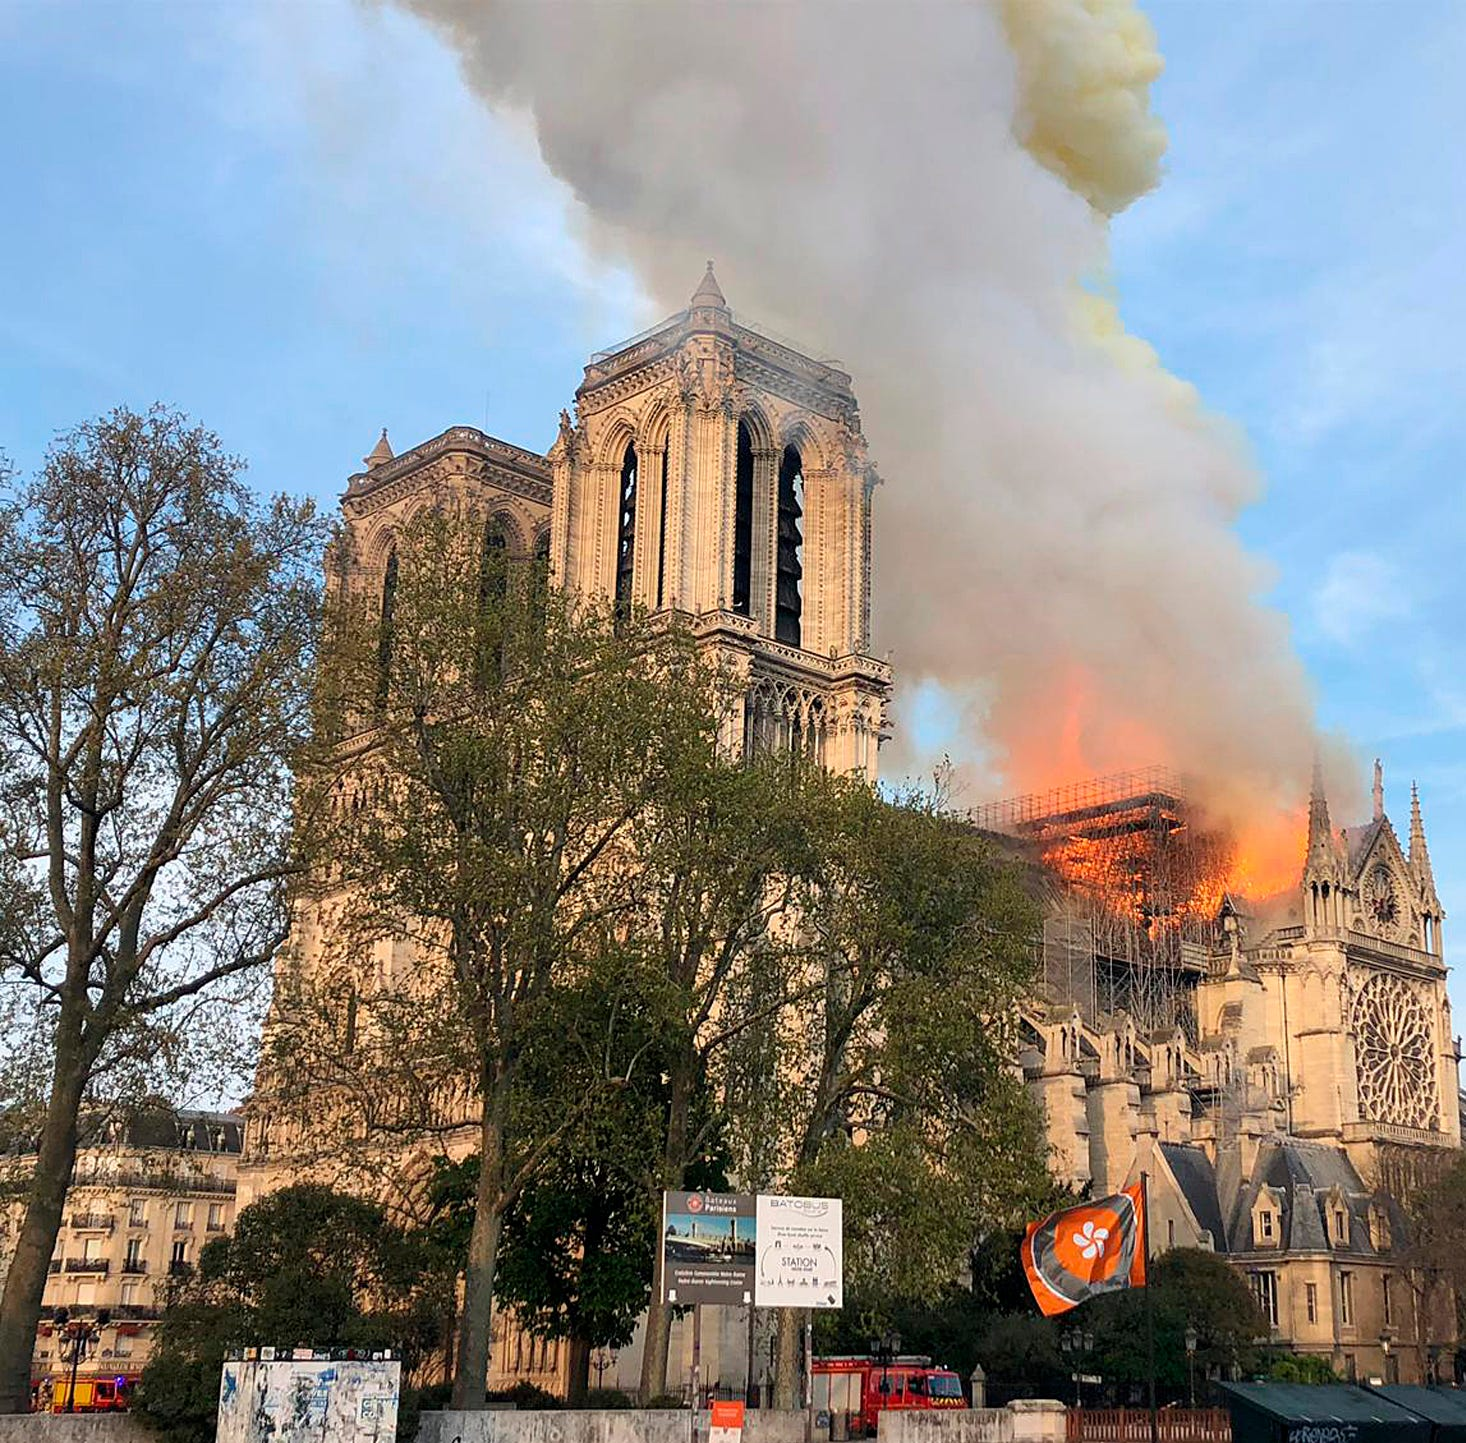 Fire burns Paris' Notre Dame cathedral